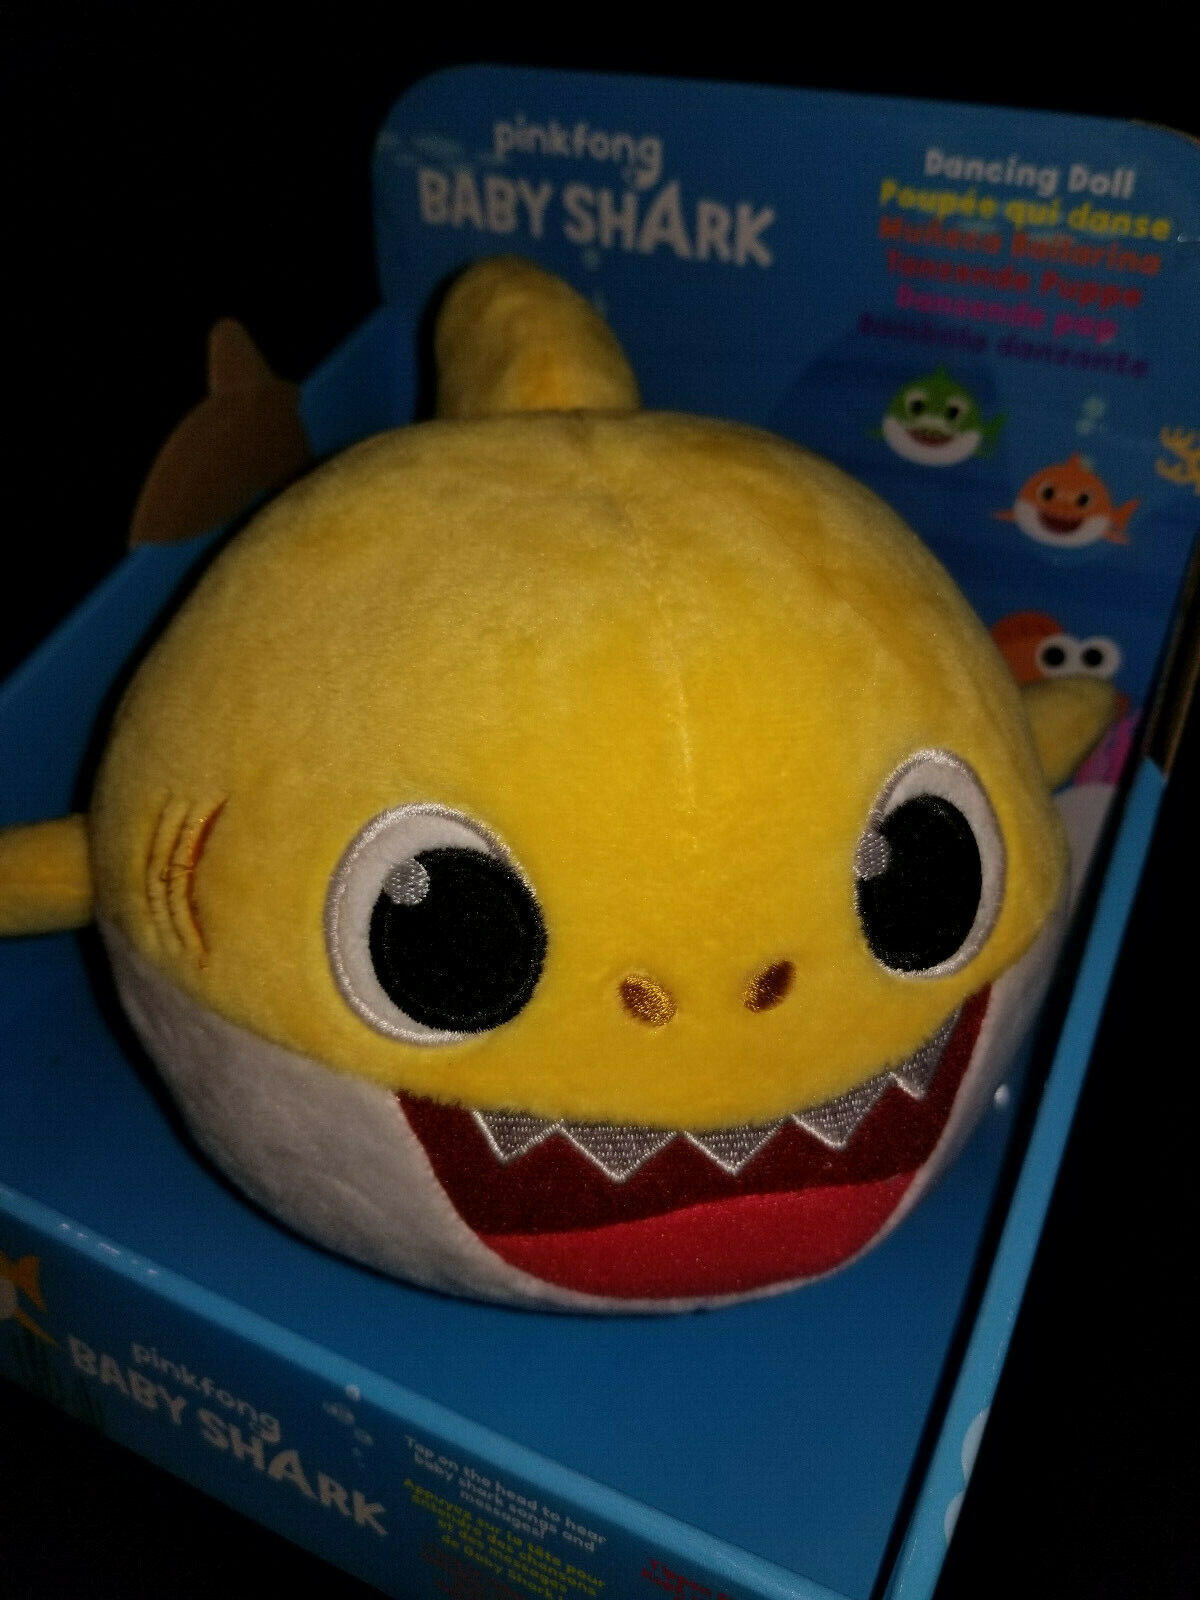 WowWee Pinkfong Baby Shark Dancing Doll (61022) for sale online | eBay